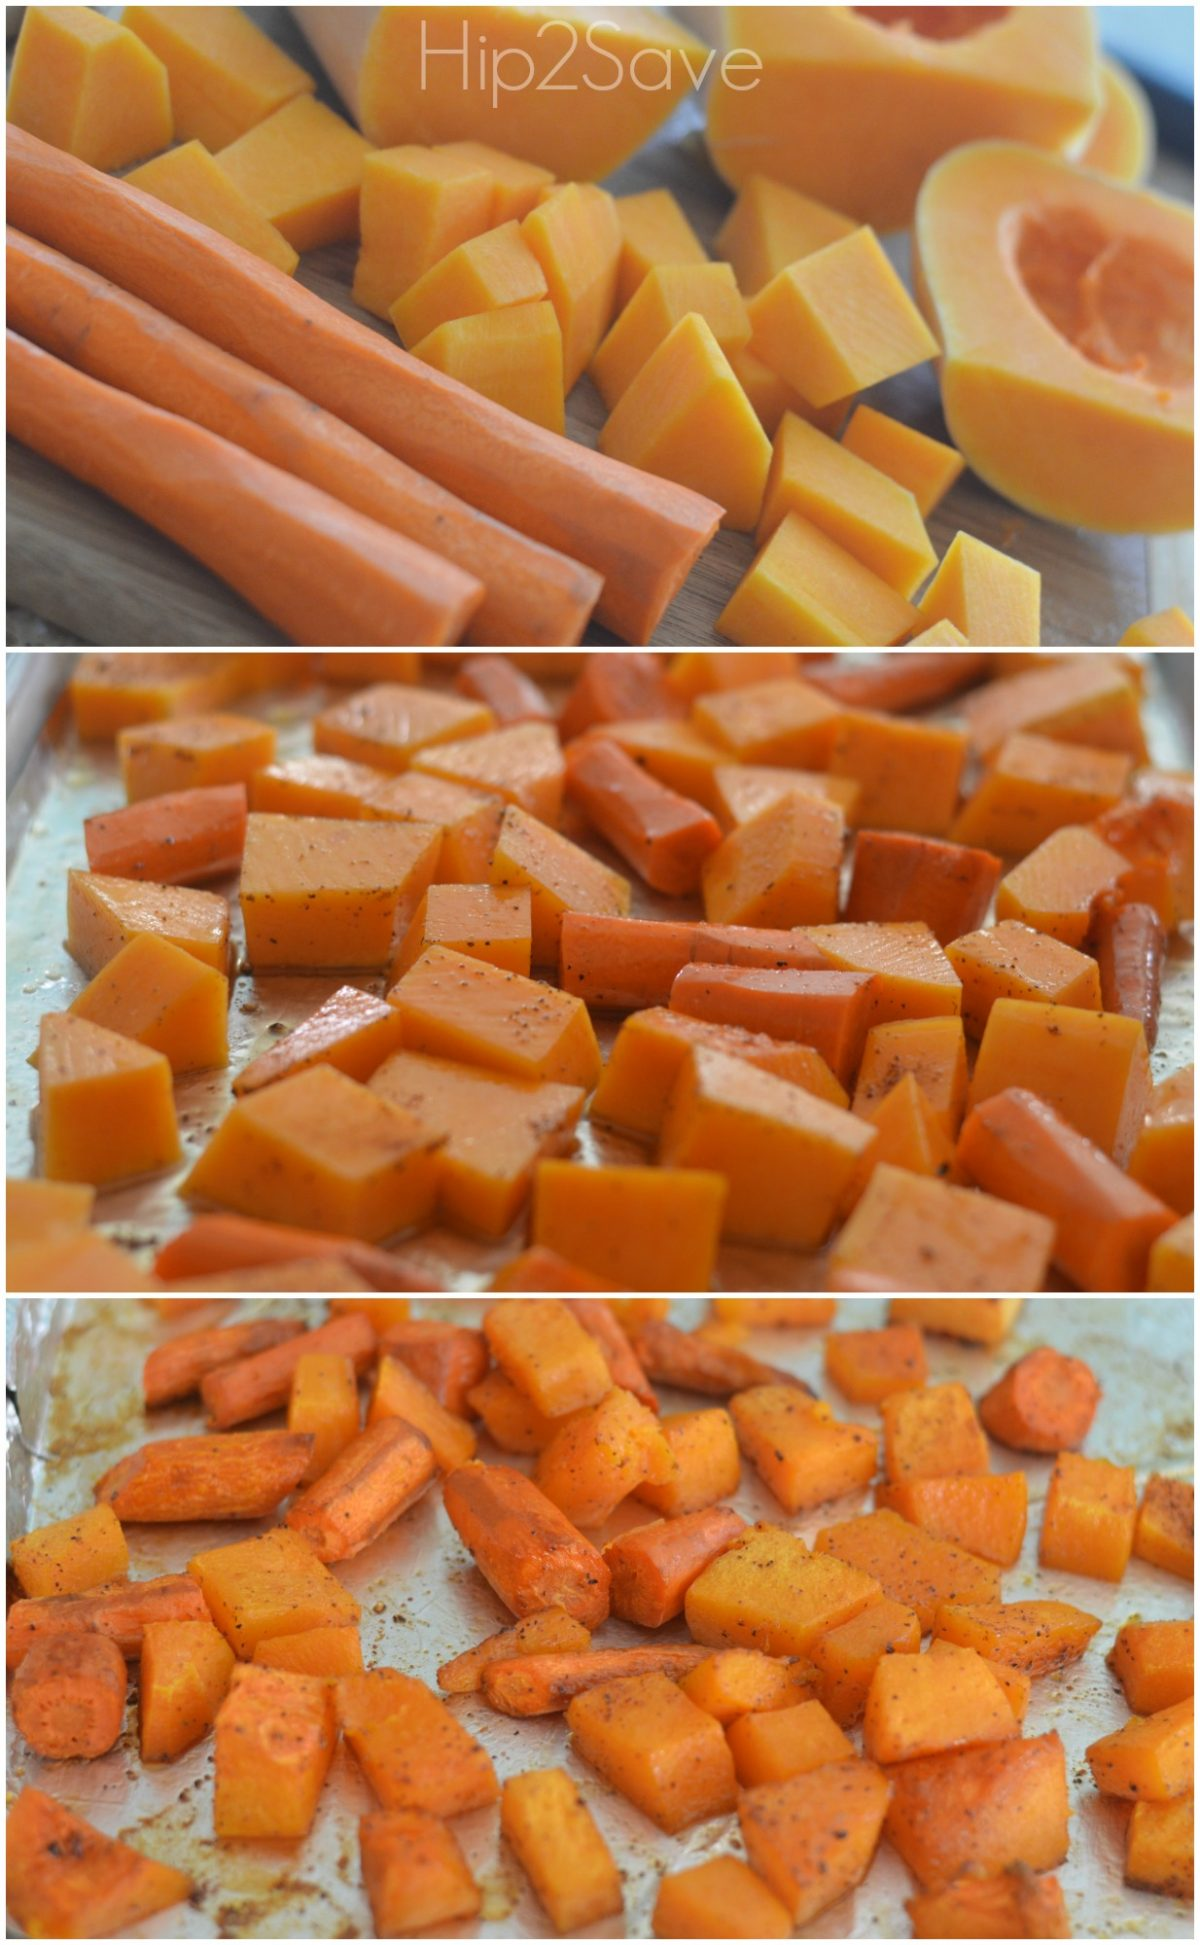 How to roast squash & carrots hip2save